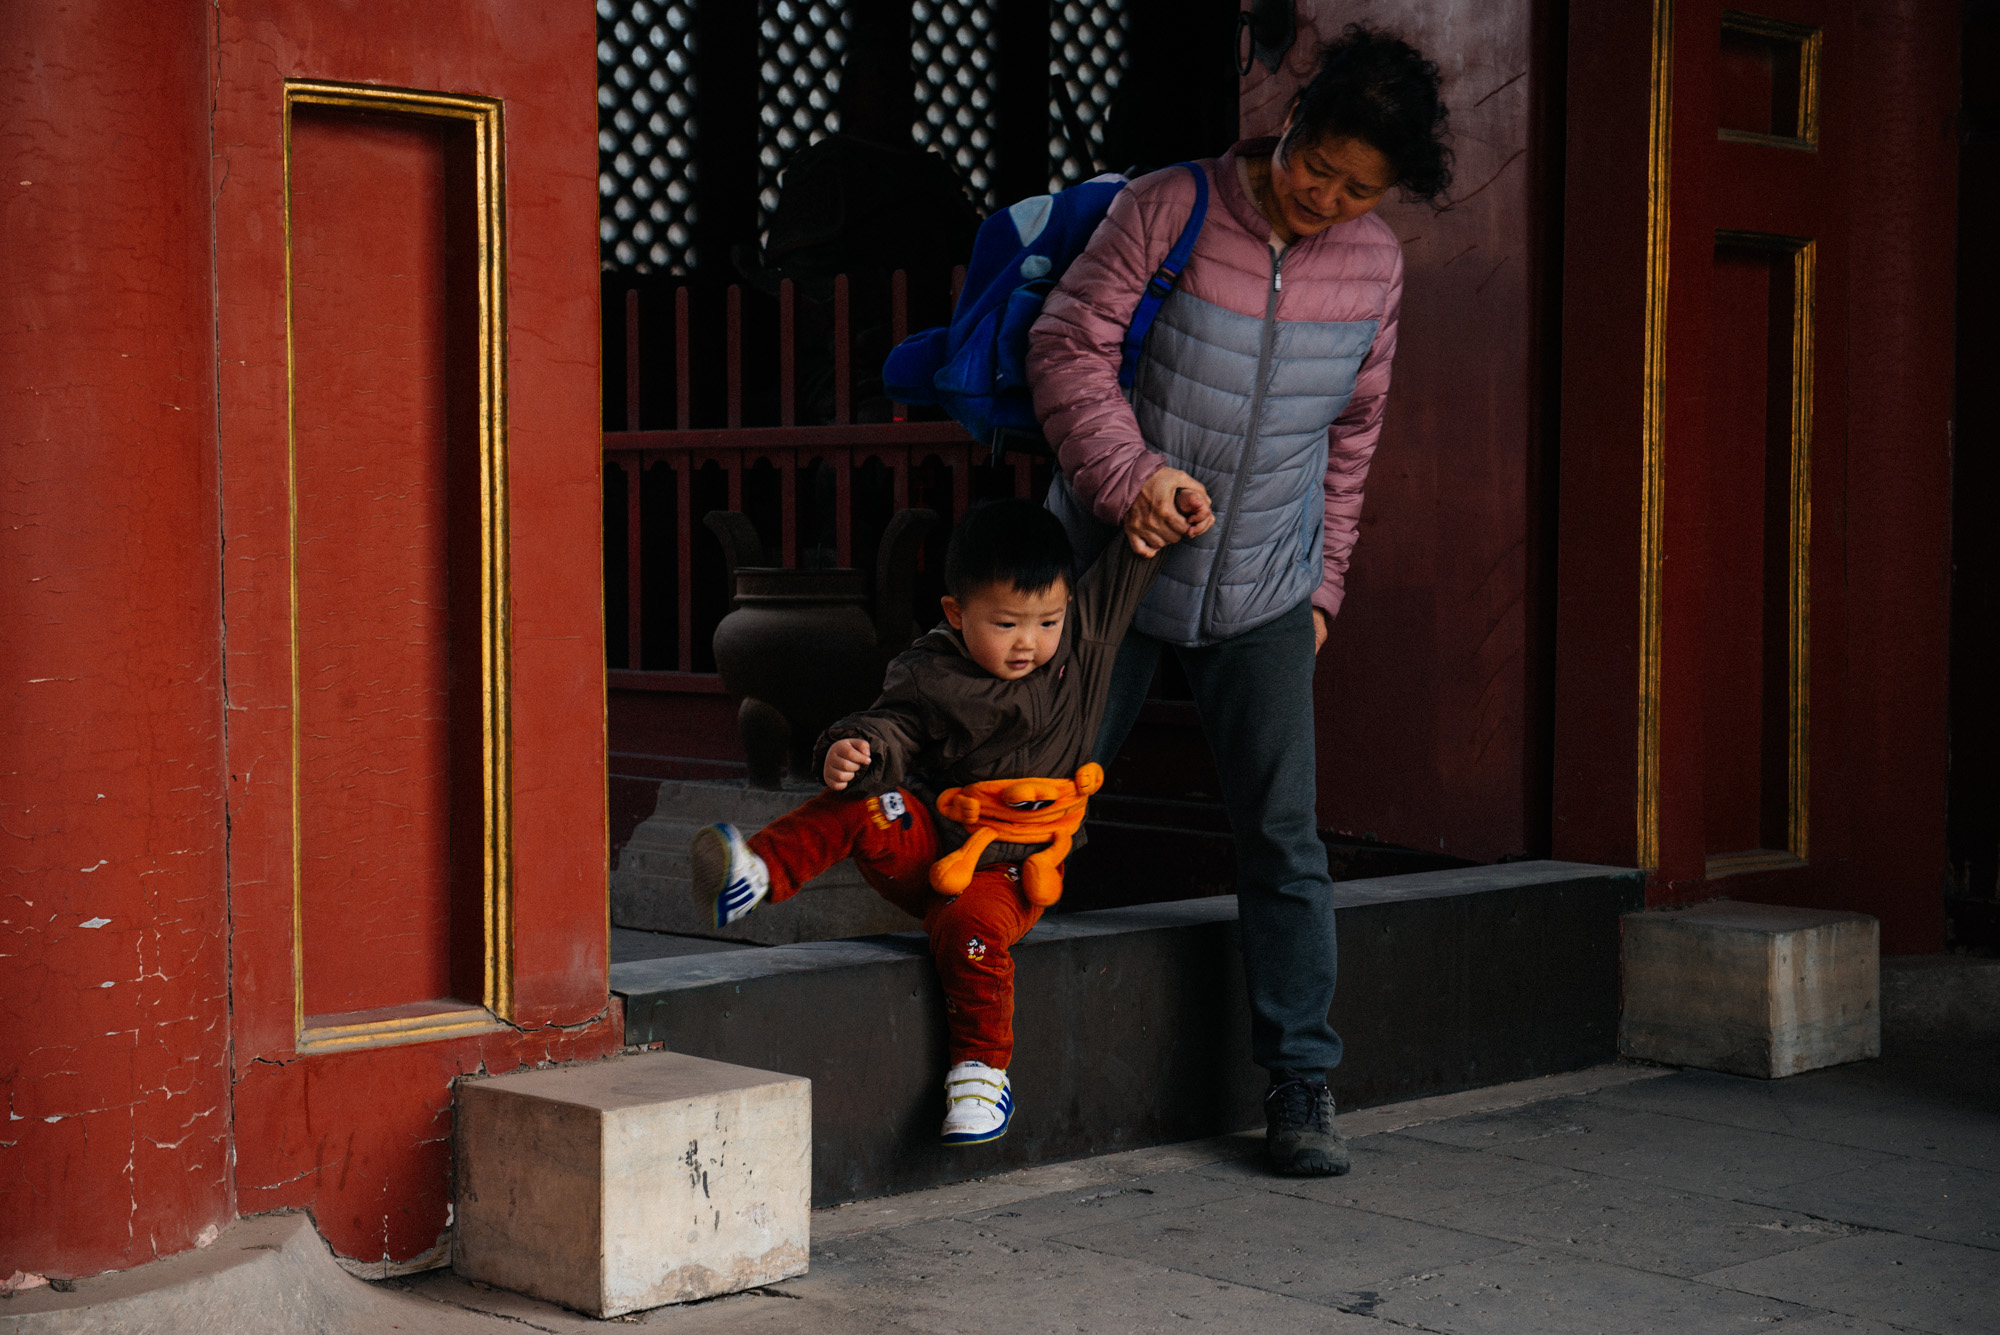 In the entrance of many temples and palaces in China, there is an elevation. Legend says this is to keep spirits from coming in. It also works with toddlers.